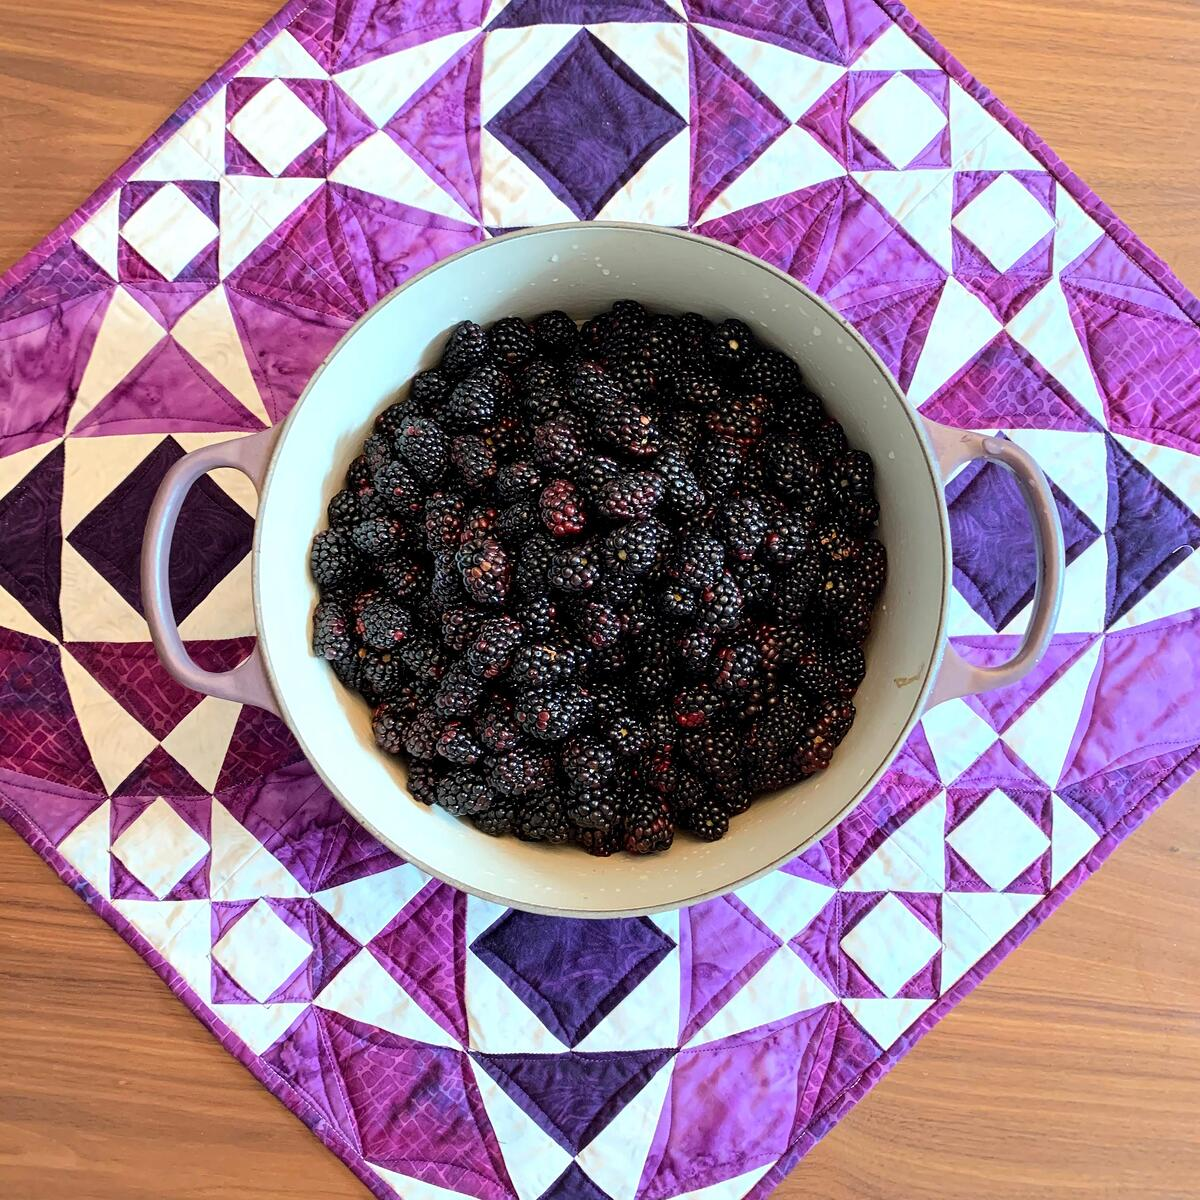 Storm at Sea quilt with pan of blackberries.